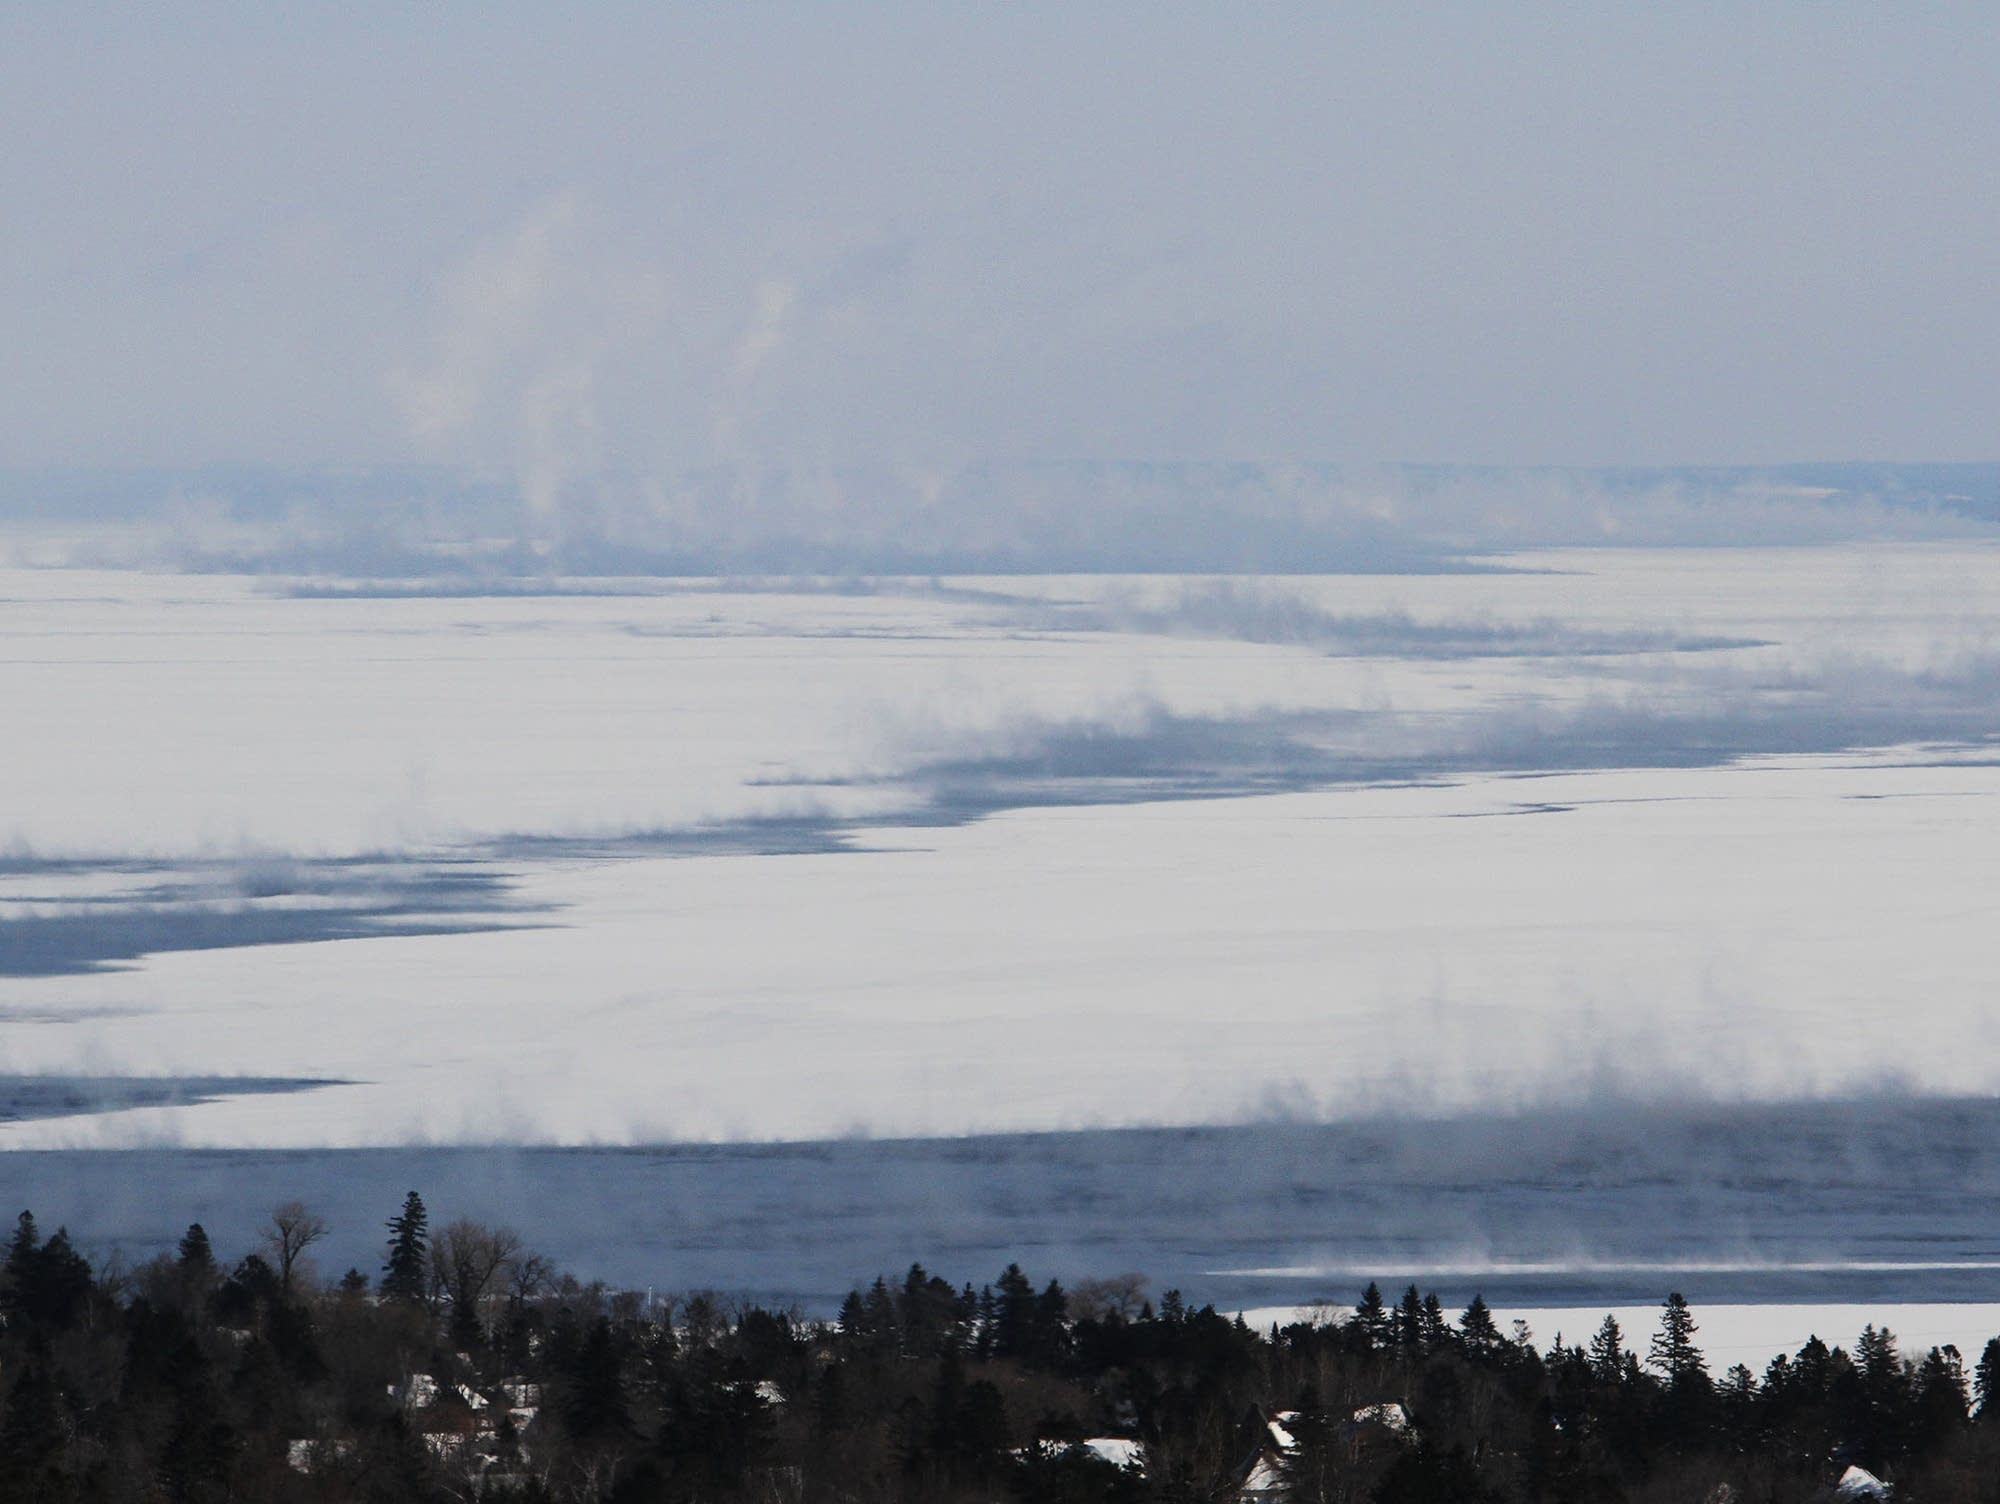 Sea smoke rises from patches of open water on icy Lake Superior